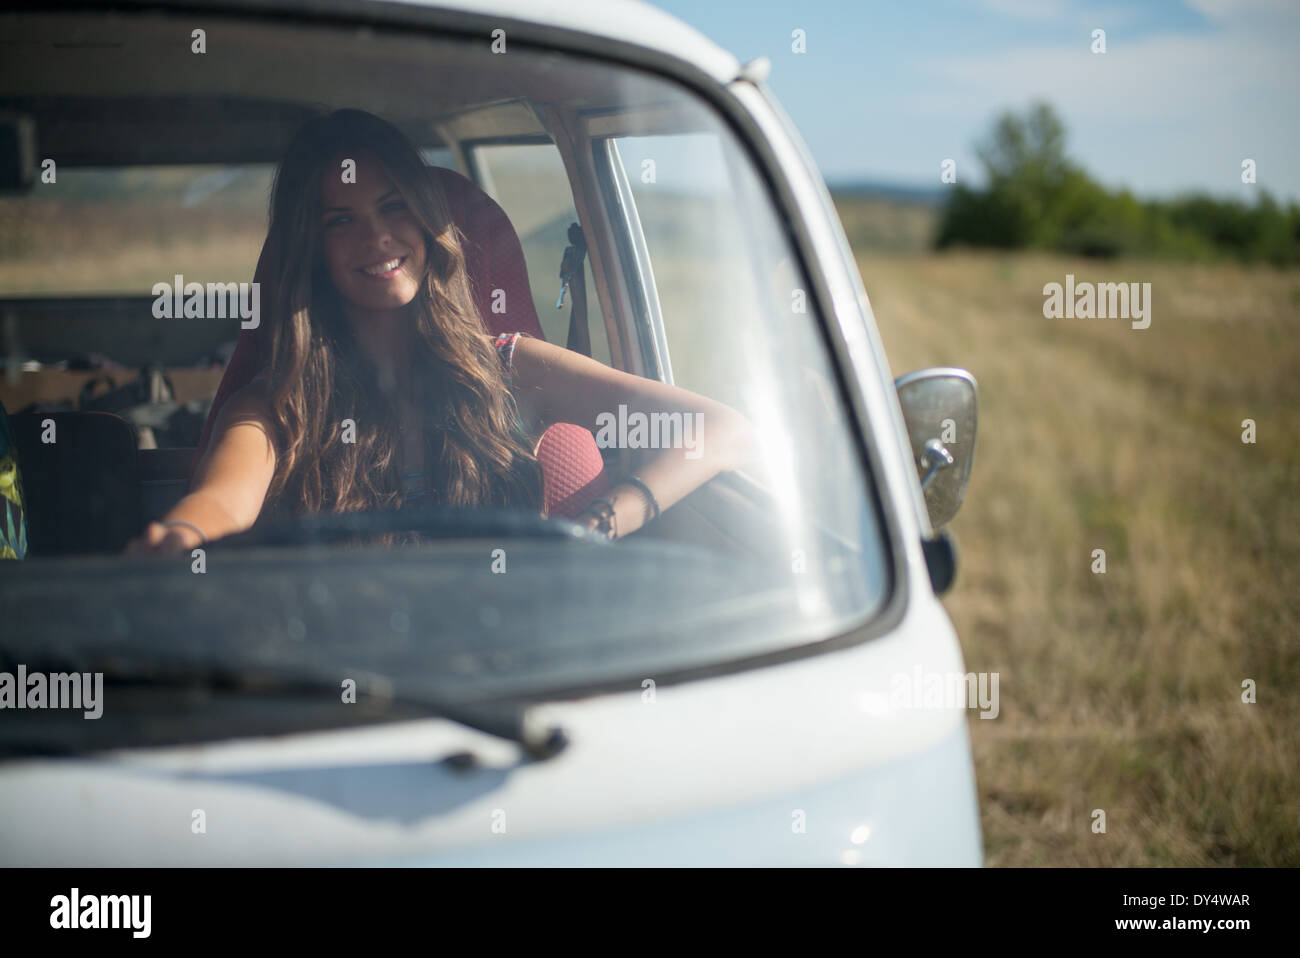 Young woman in campervan - Stock Image